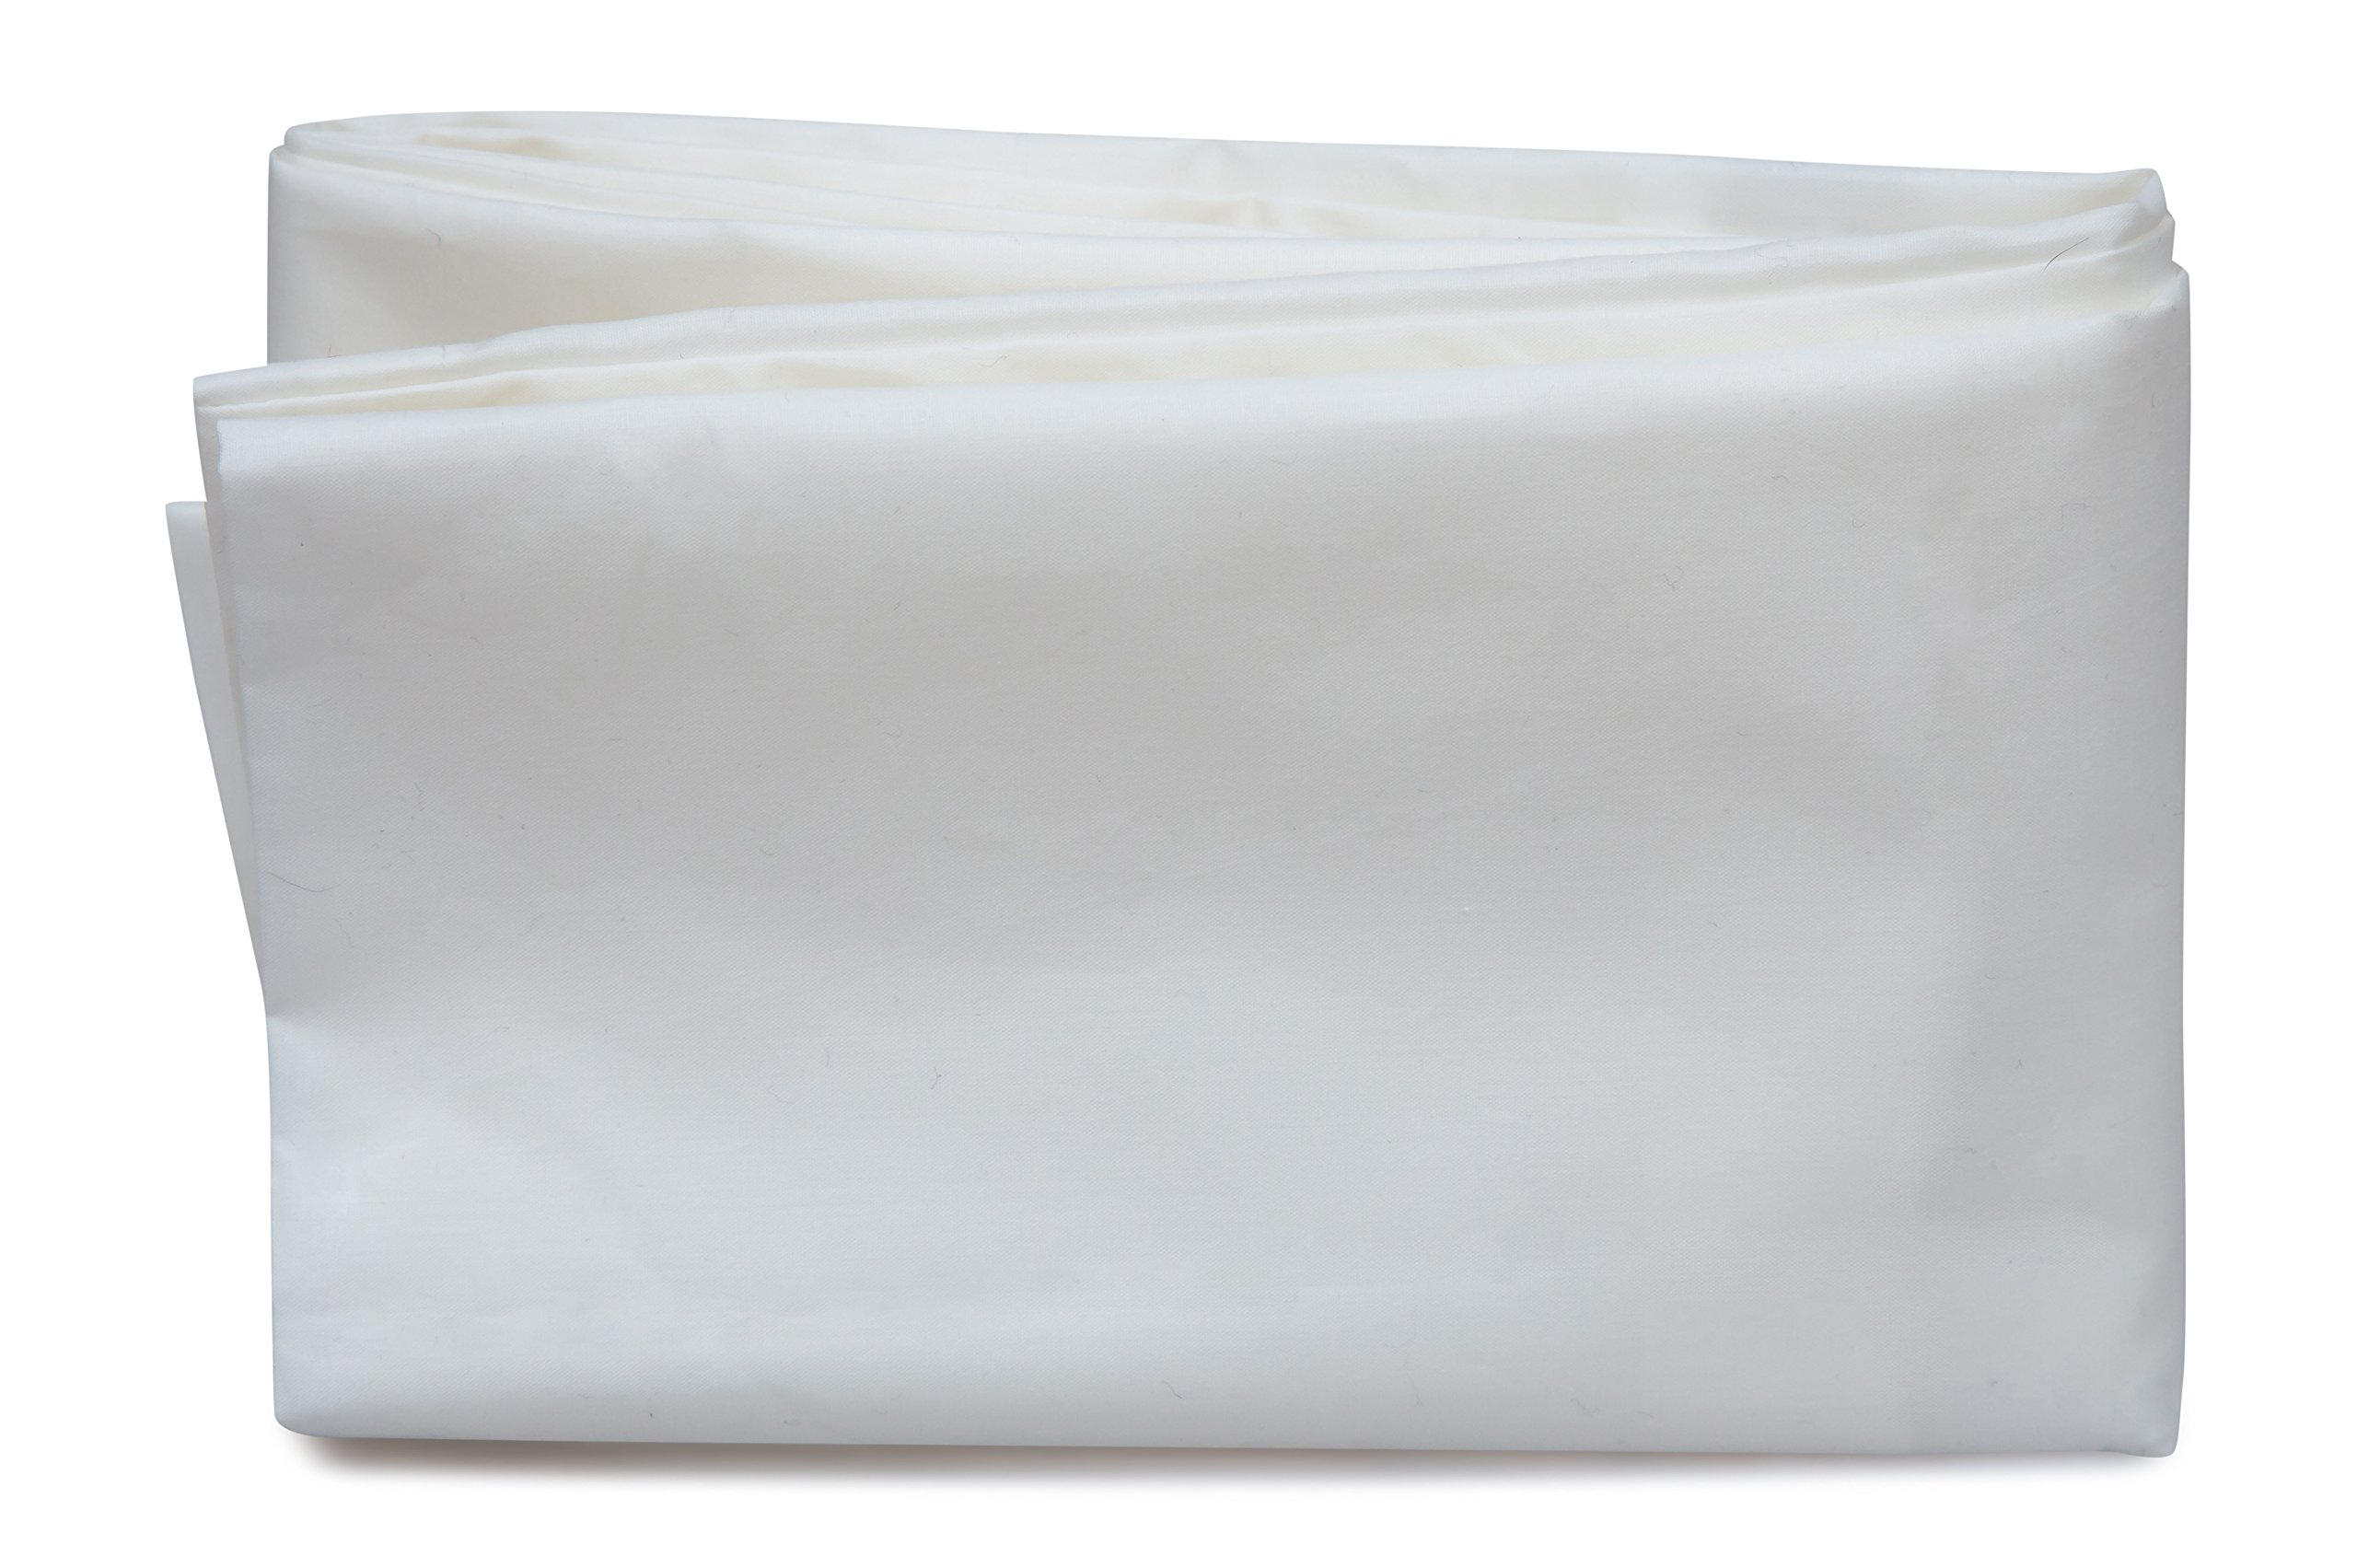 Toddler Pillowcase By Mother Sheep Organics, 100% Pure Certified Long Staple Organic Cotton, 240 Thread Count, Soft Percale Weave